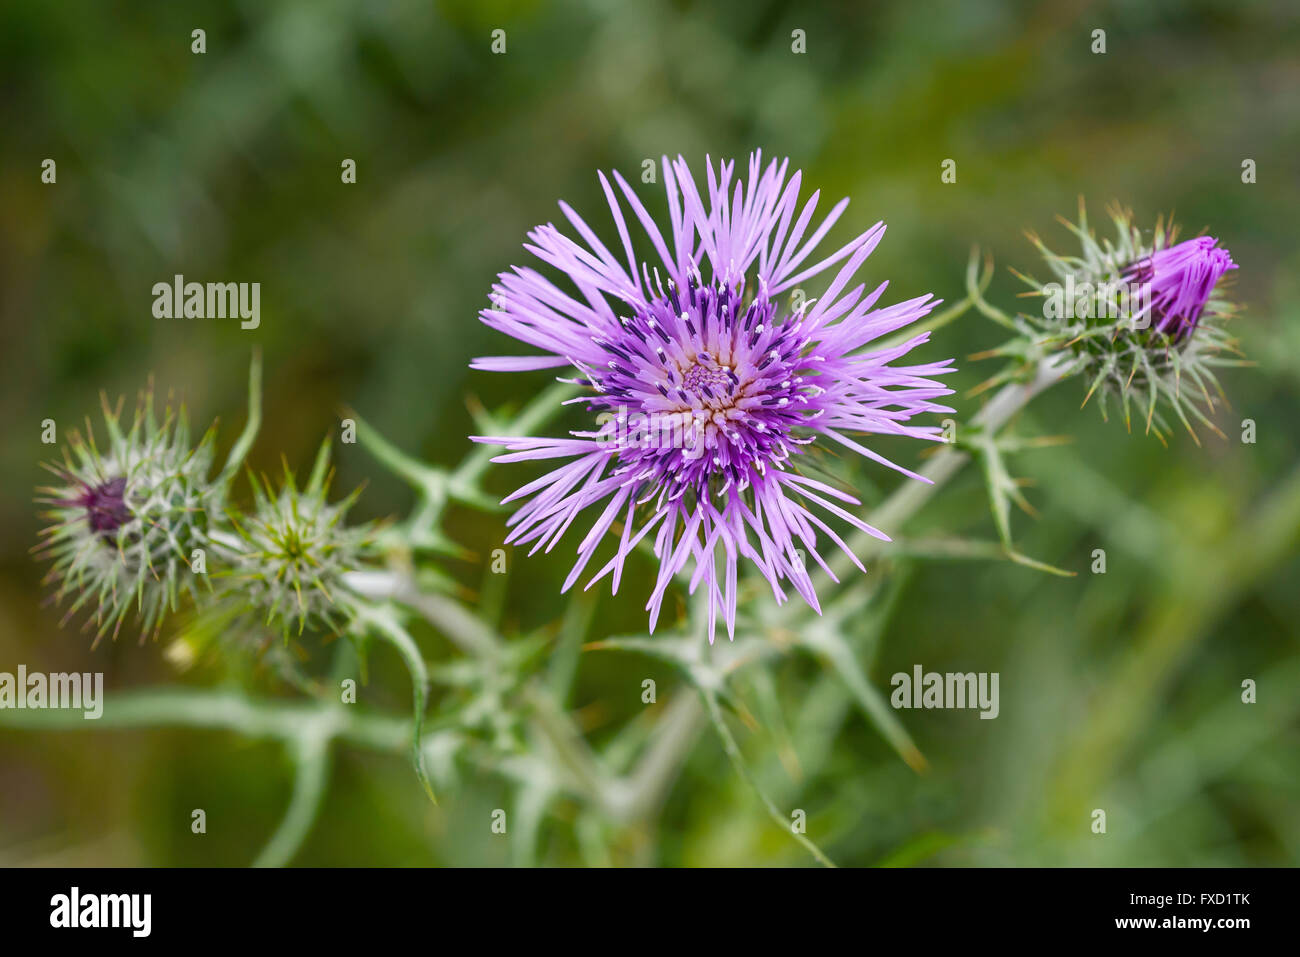 thistles flowers  on a blurred background - Stock Image